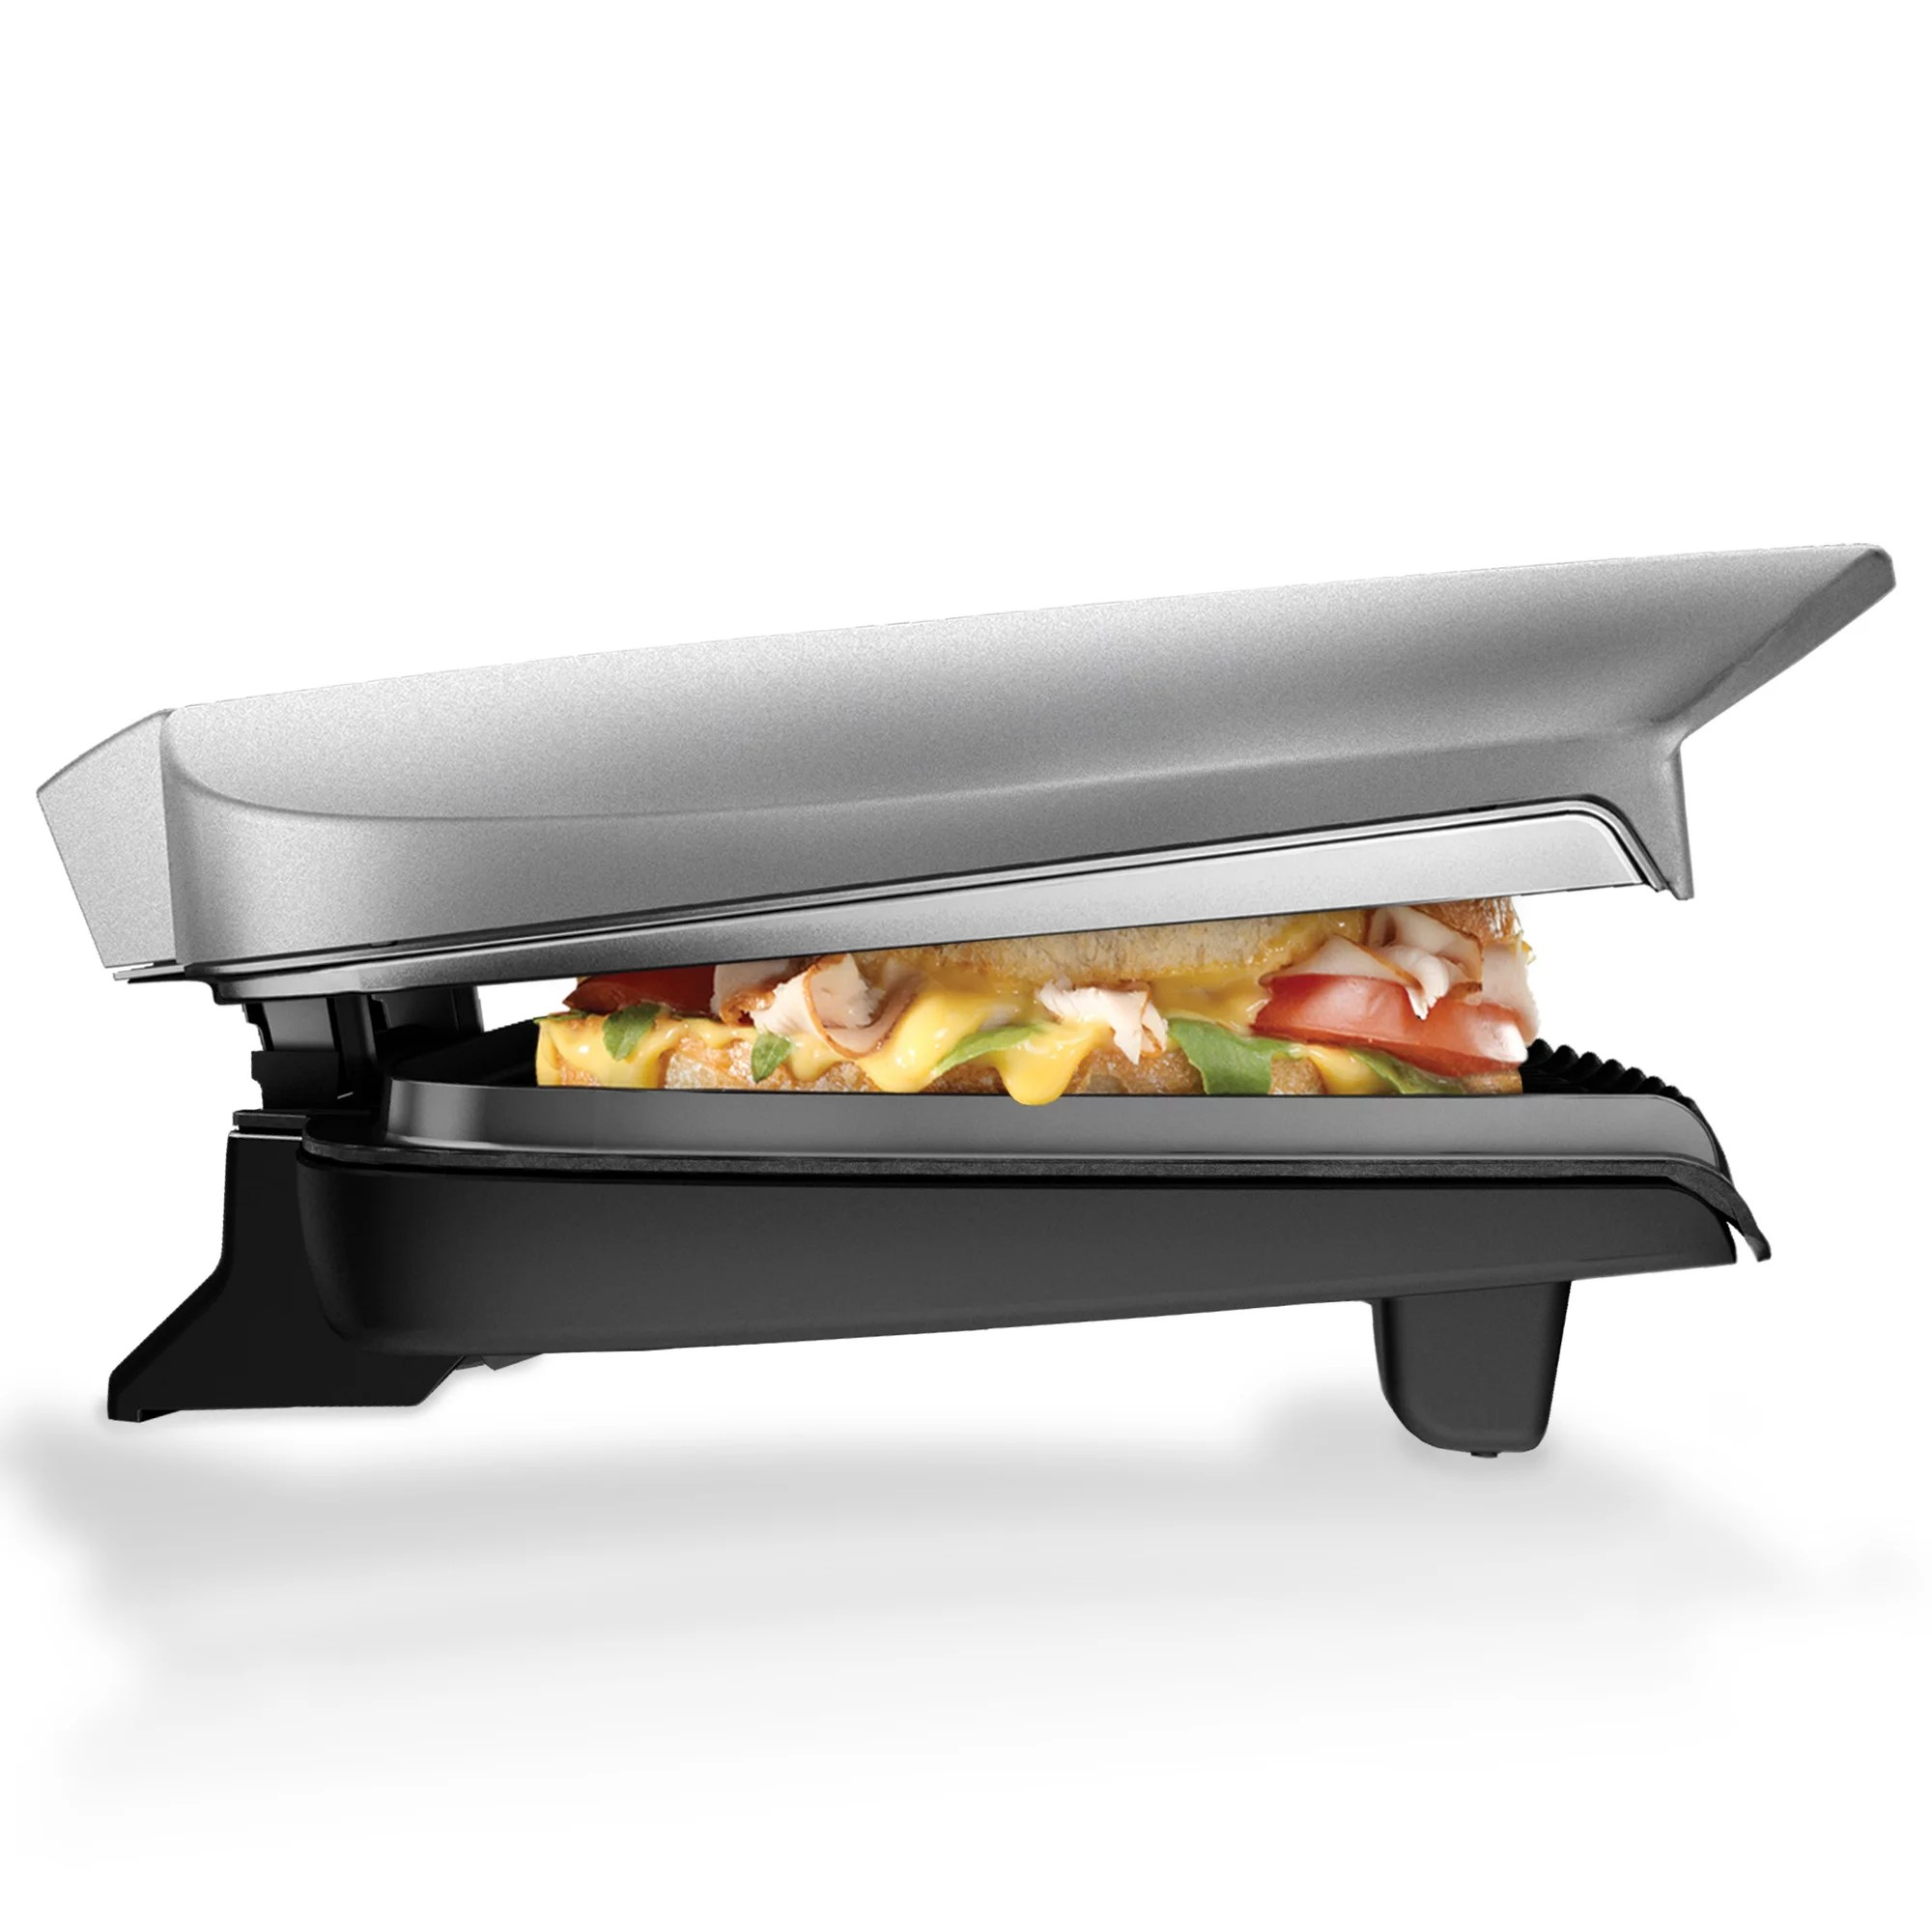 Grille Panini George Foreman 9 Serving Classic Plate Electric Indoor Grill And